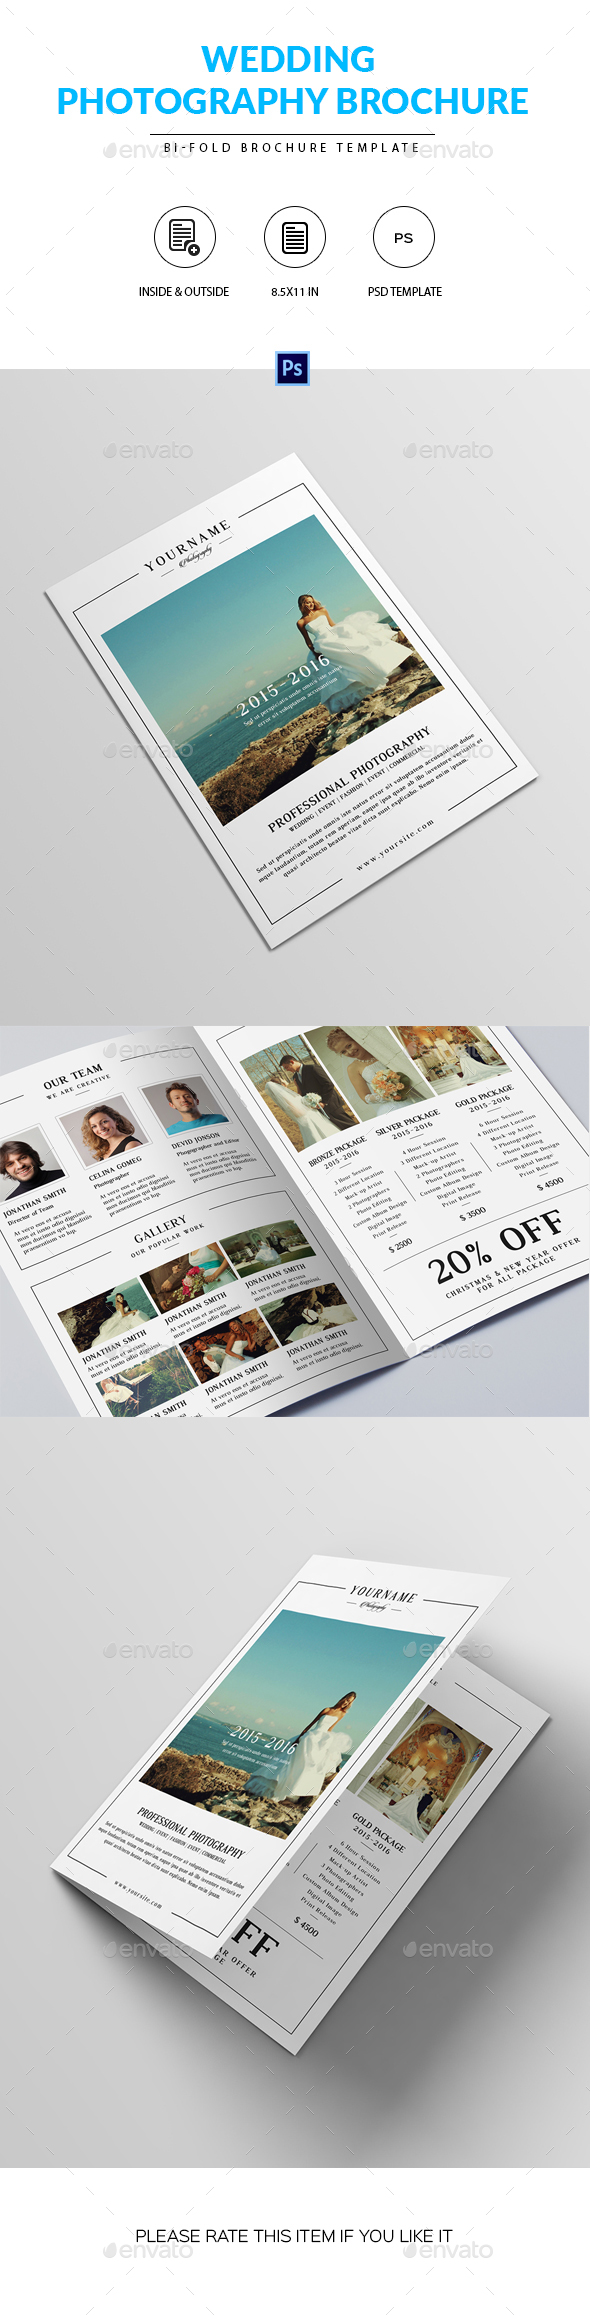 Wedding Photography Brochure Template - Corporate Brochures